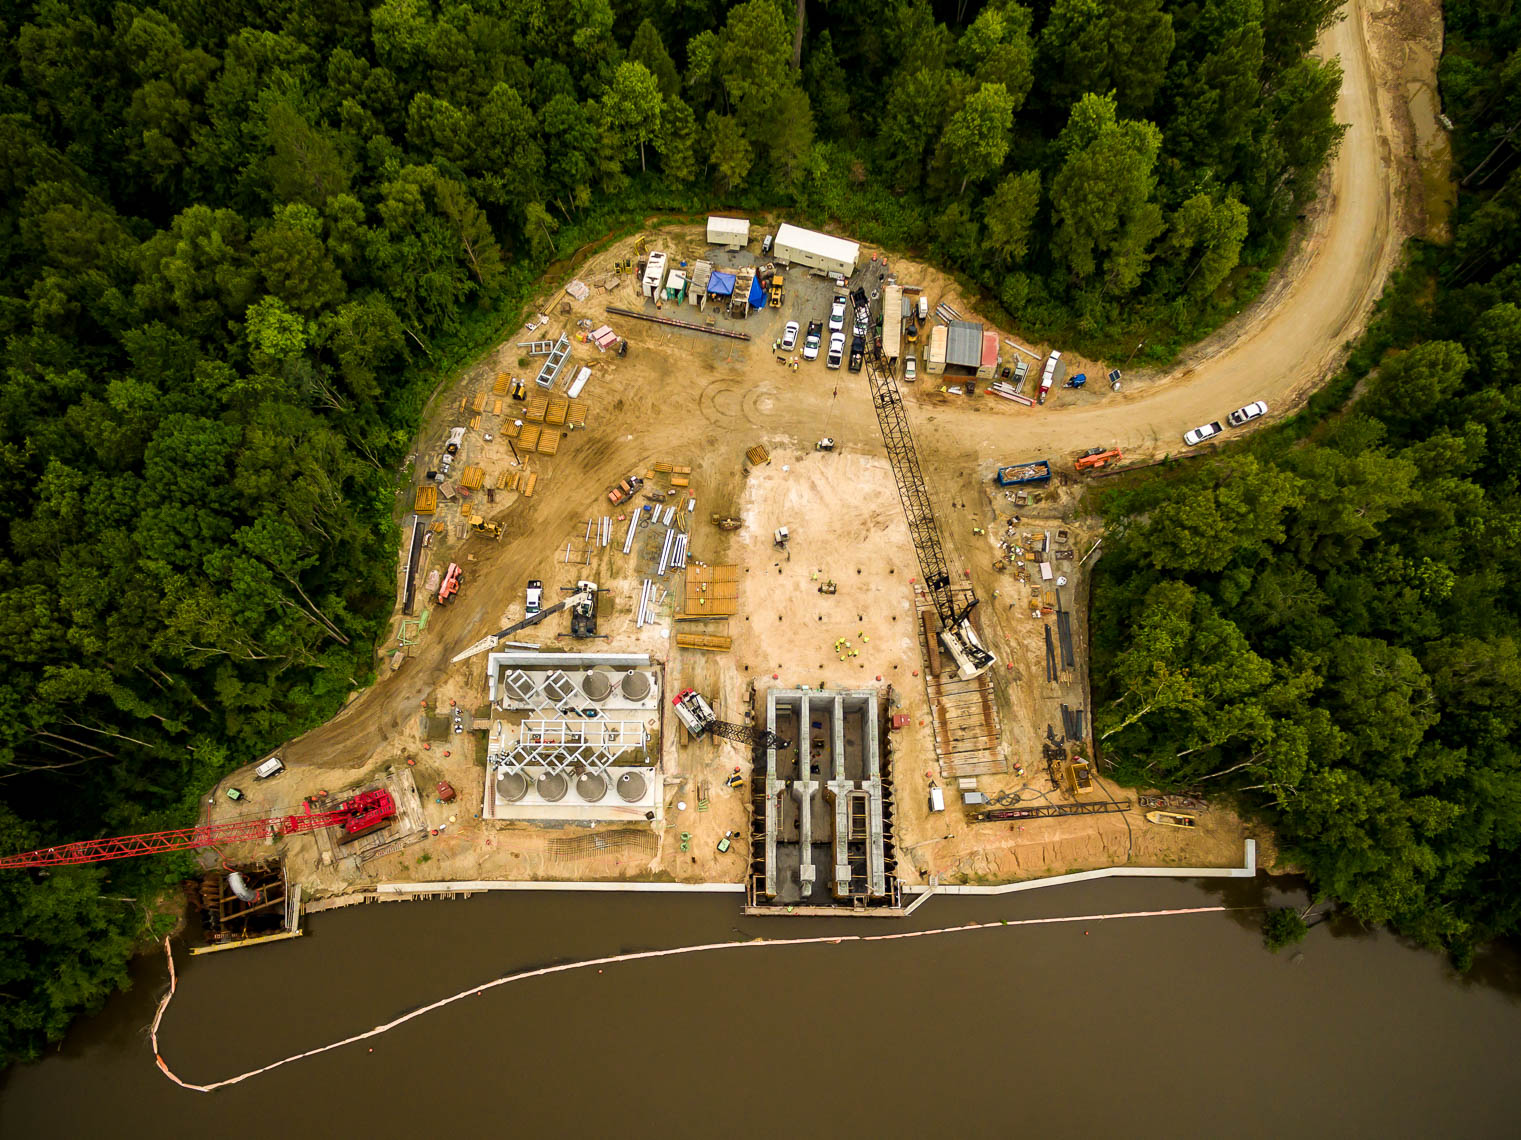 Drone Photo of Water Aeration Facility